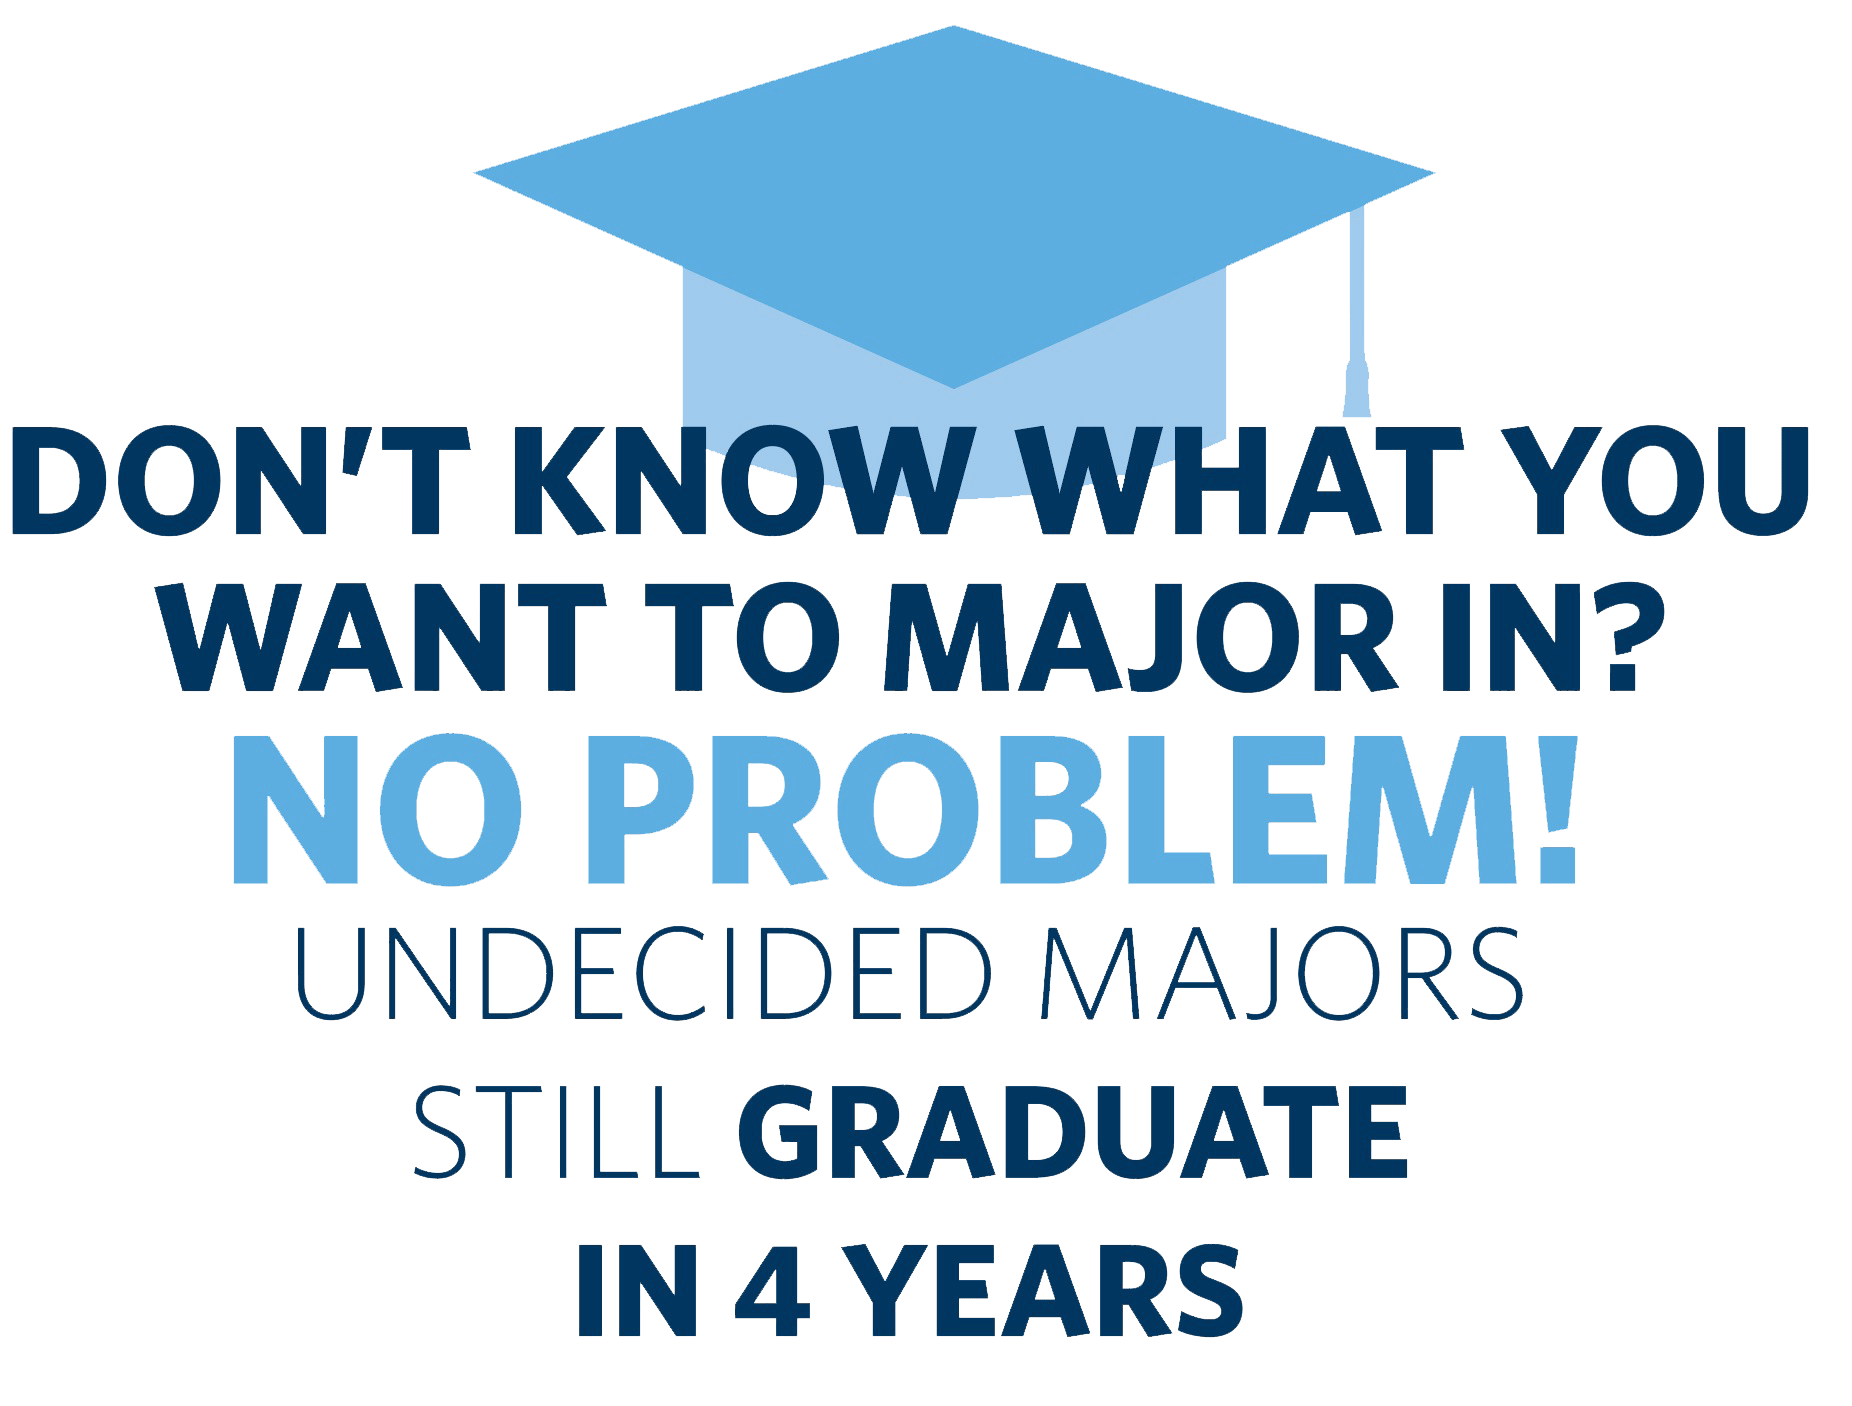 Don't know what you want to major in?  No Problem!  Undecided Majors Still Graduate in 4 Years.